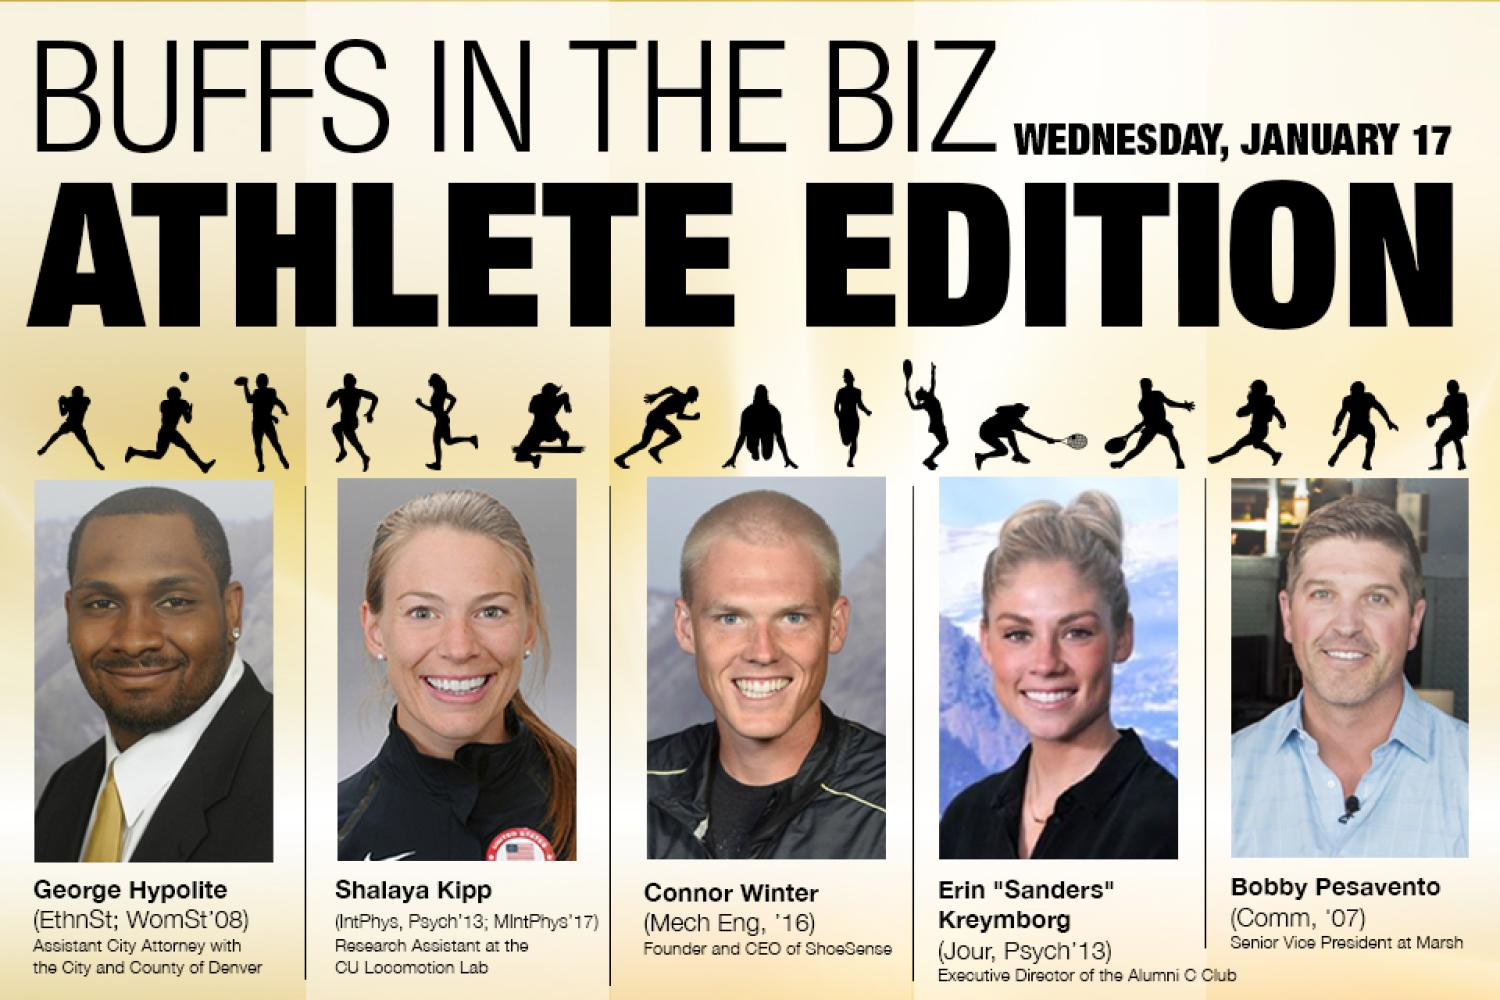 Join us for Buffs in the Biz Jan. 17!